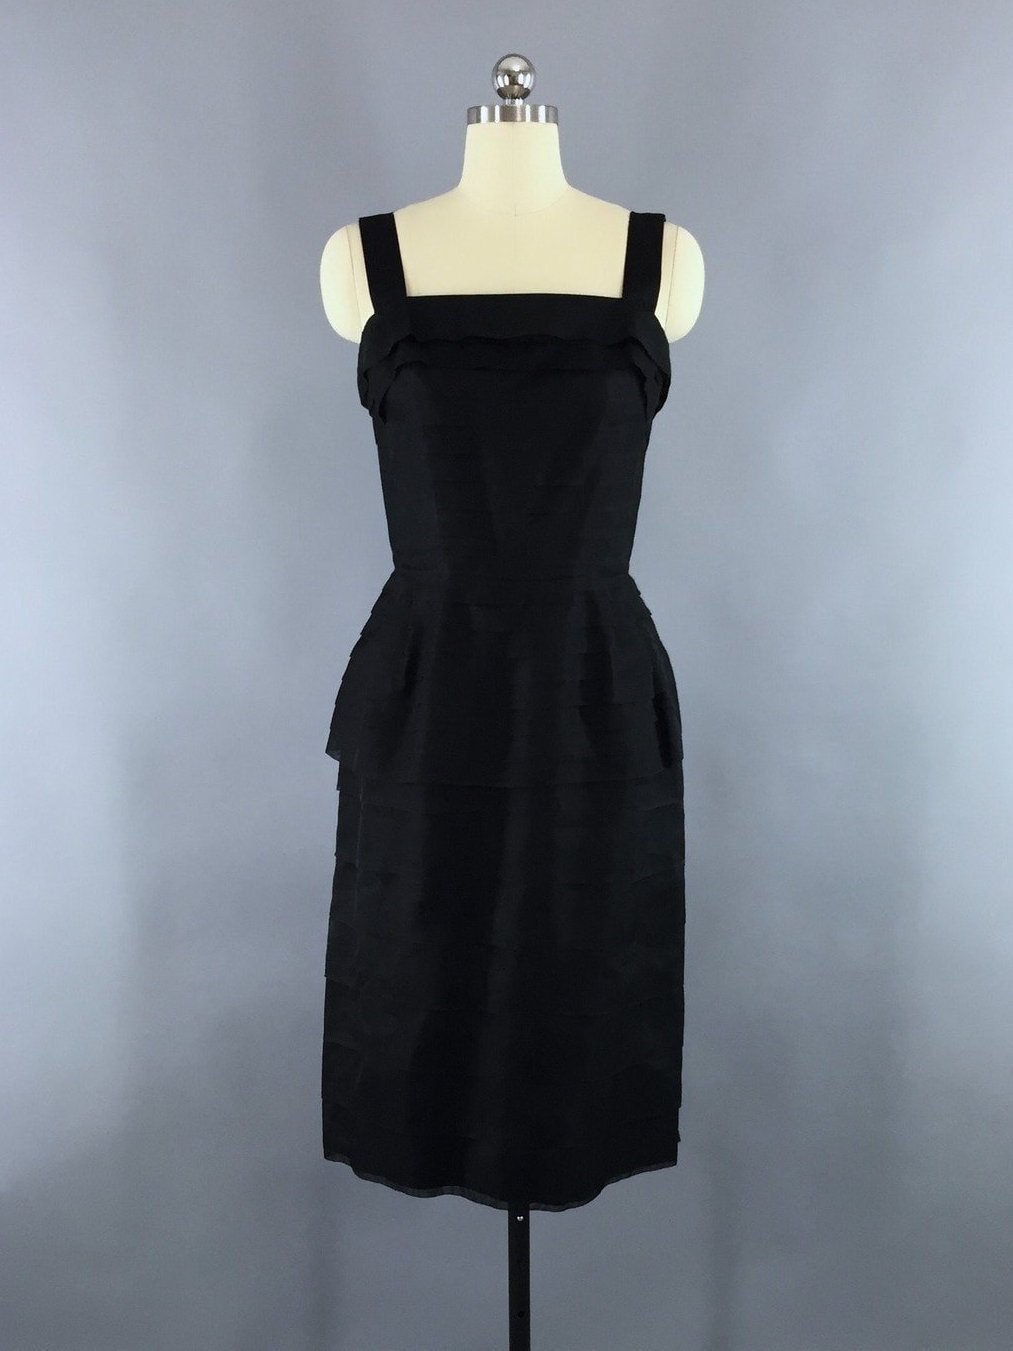 Vintage 1950s Black Organdy Cocktail Dress Dress ThisBlueBird